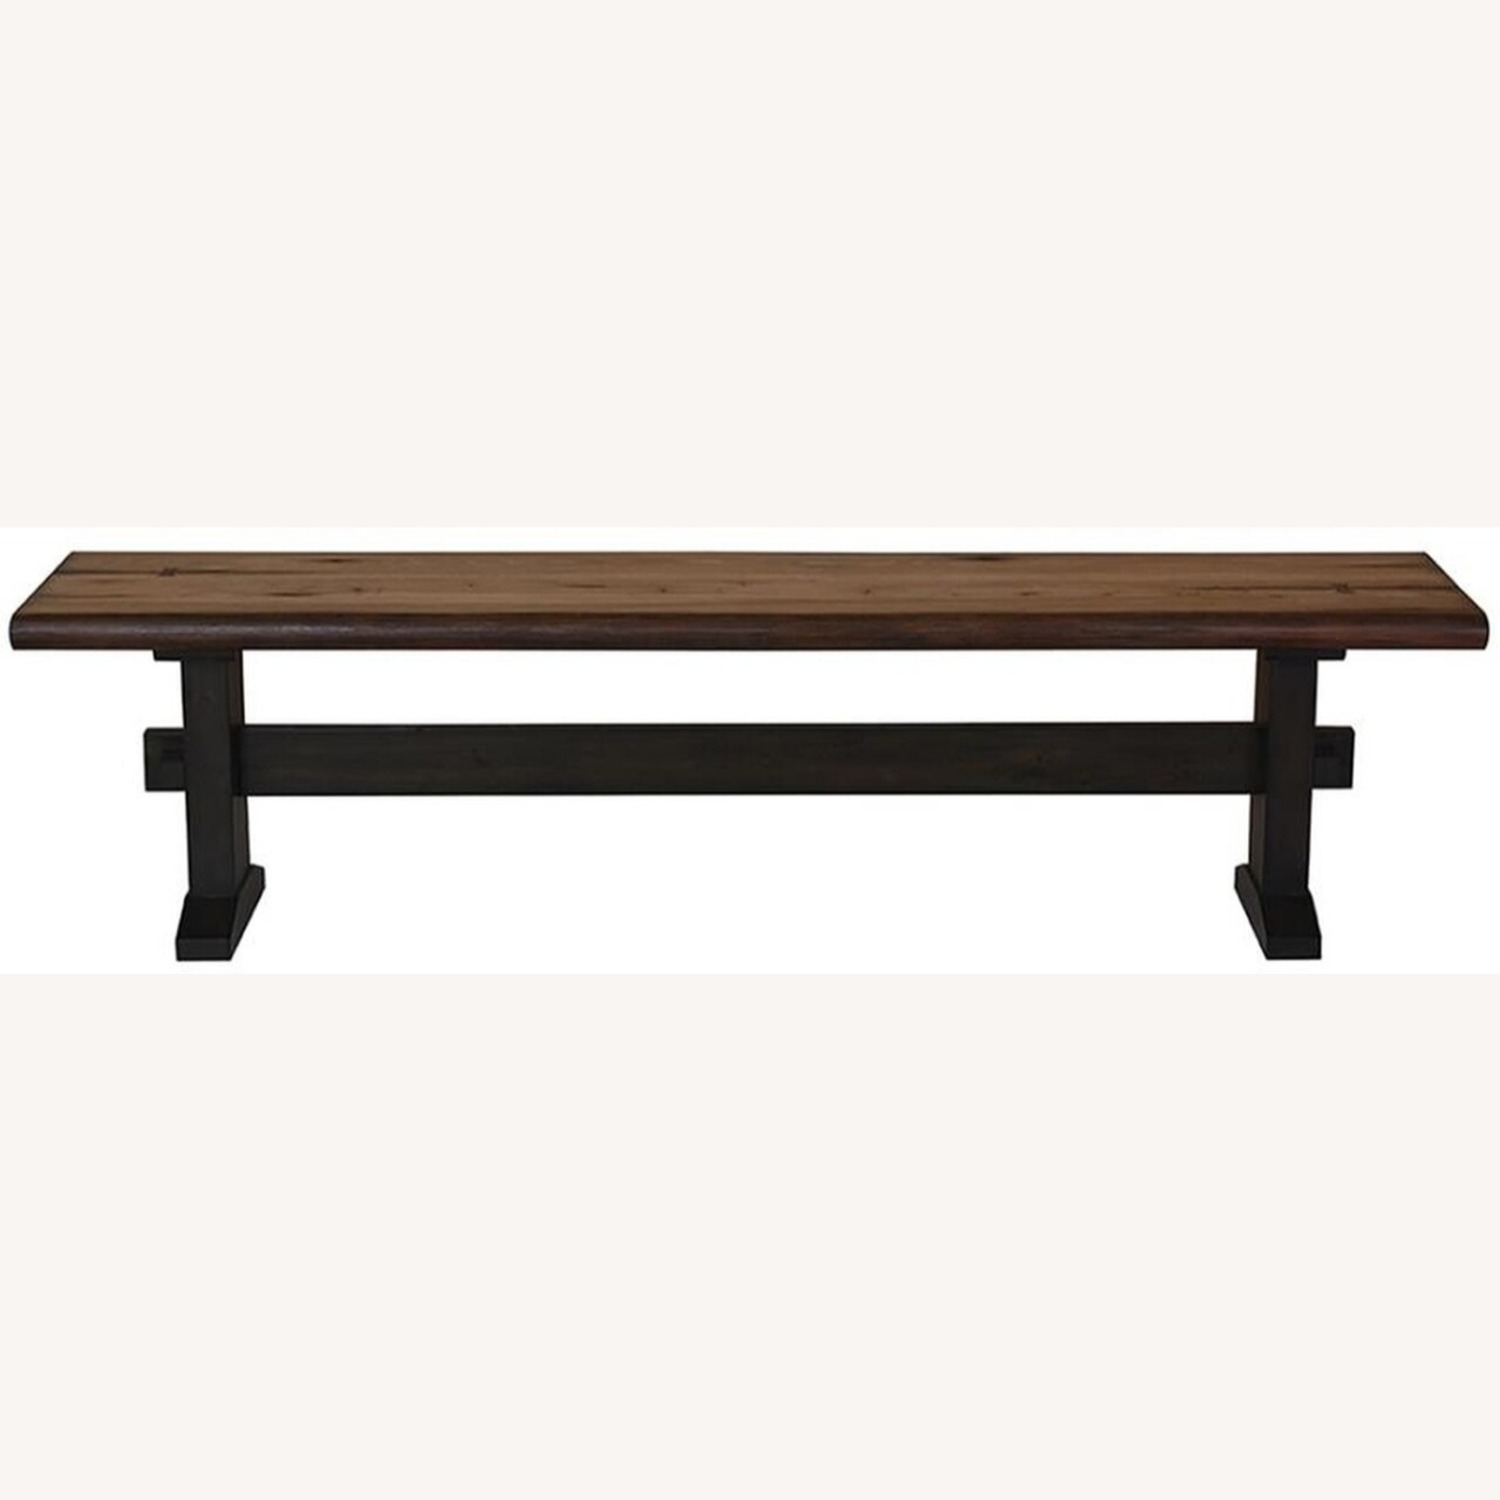 Transitional Live Edge Bench In Honey Toned Finish - image-1